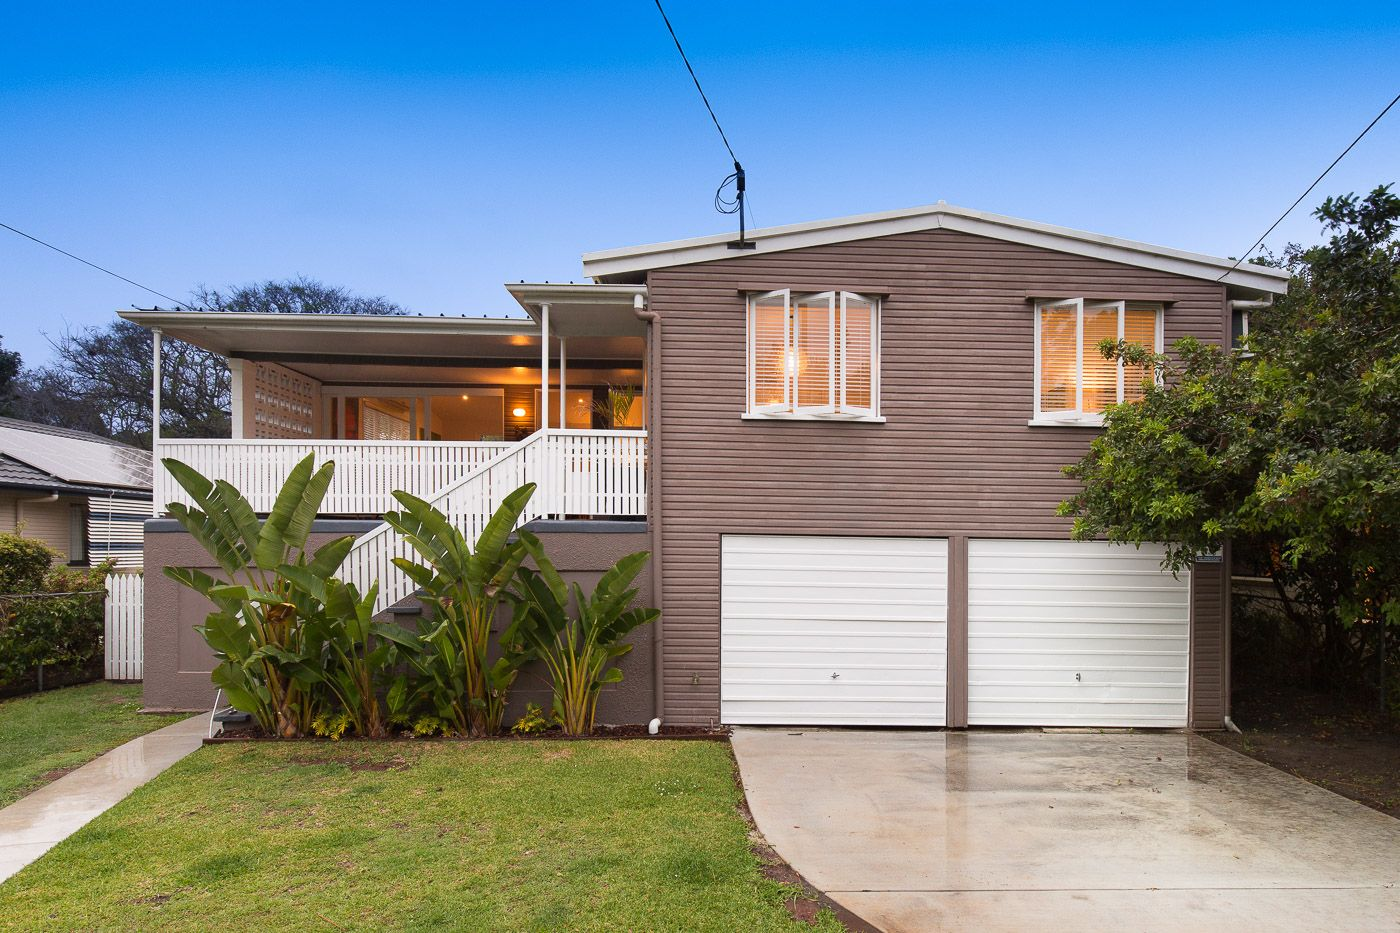 36 Muriel Avenue Manly West 4179